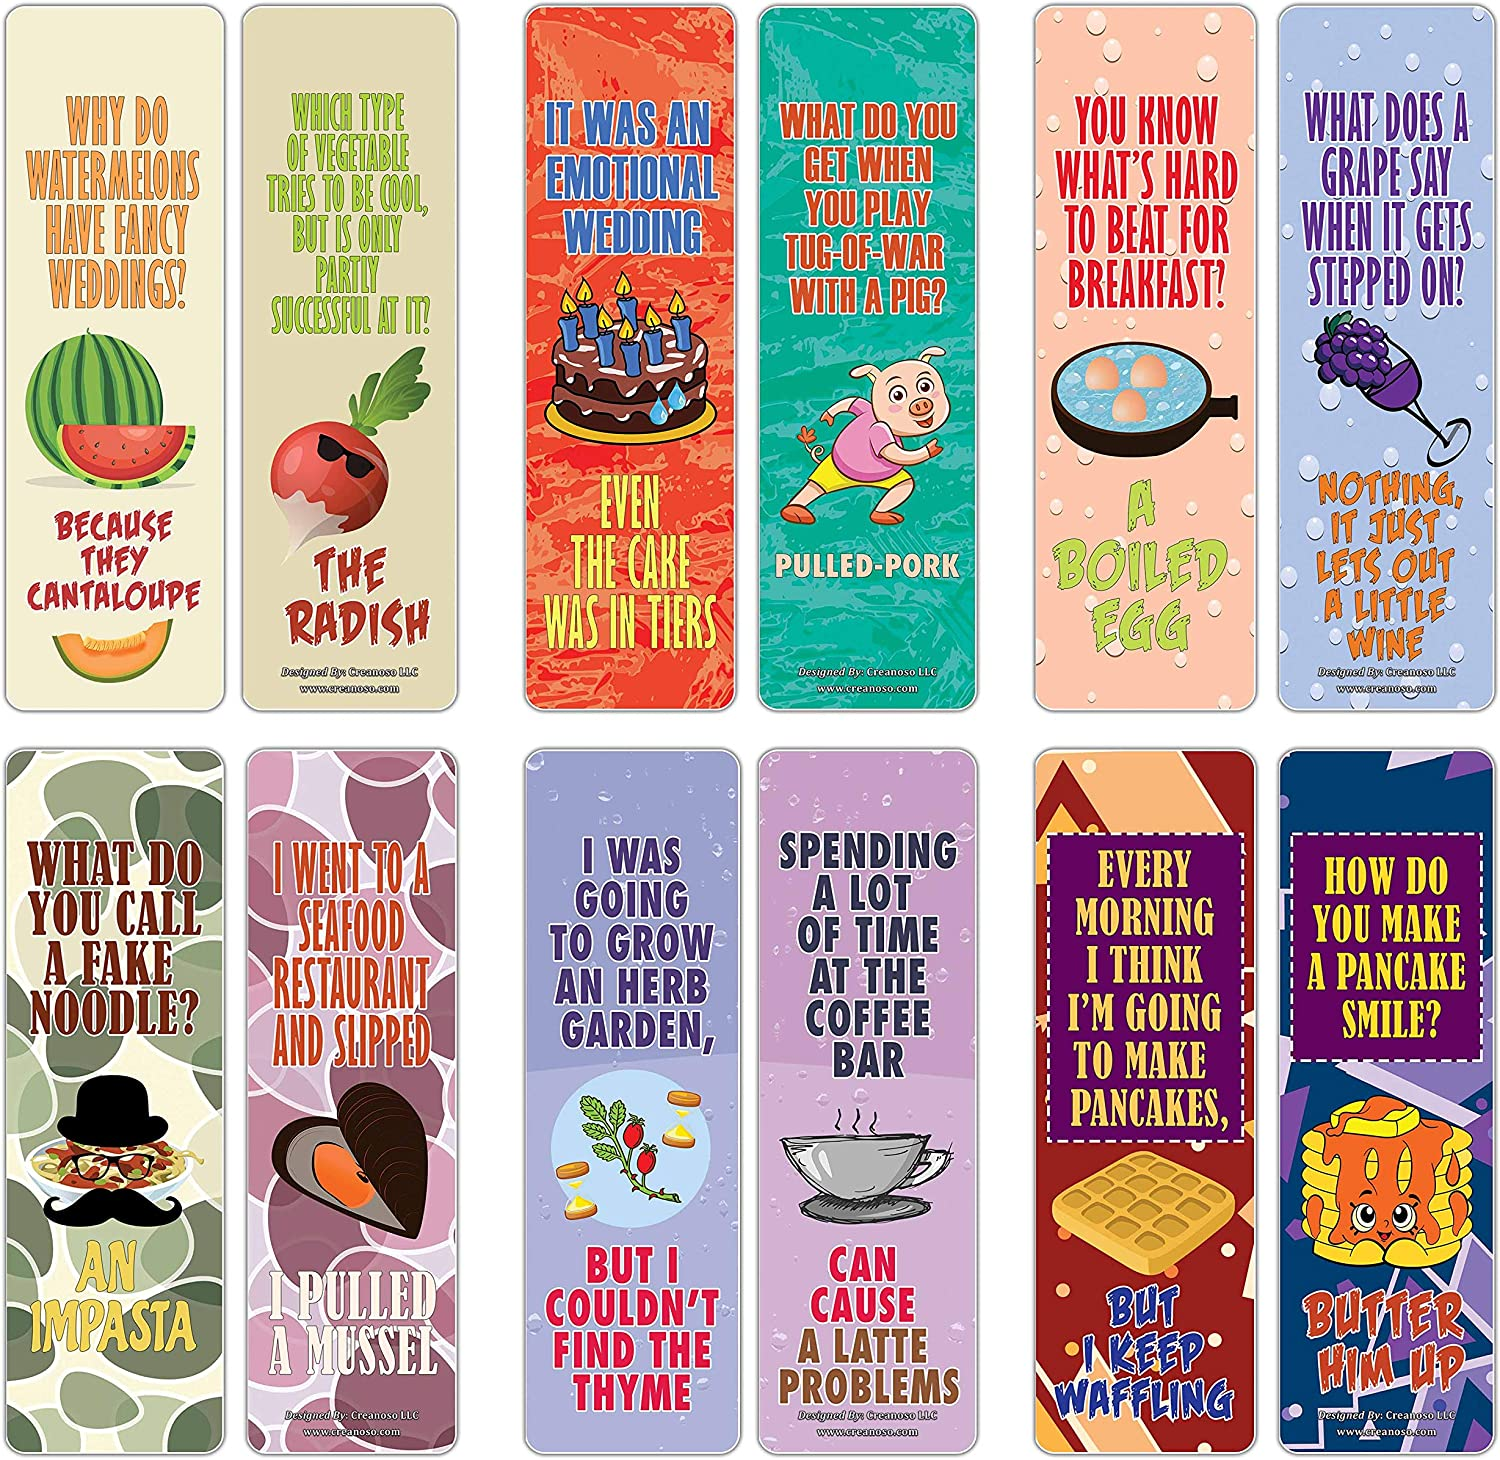 Amazon Com Creanoso Food Puns Funny Jokes Bookmarks 30 Pack Six Assorted Quality Bookmarker Cards Set Premium Gift Token Giveaways For Boys Girls Men Women Adults Cool Book Page